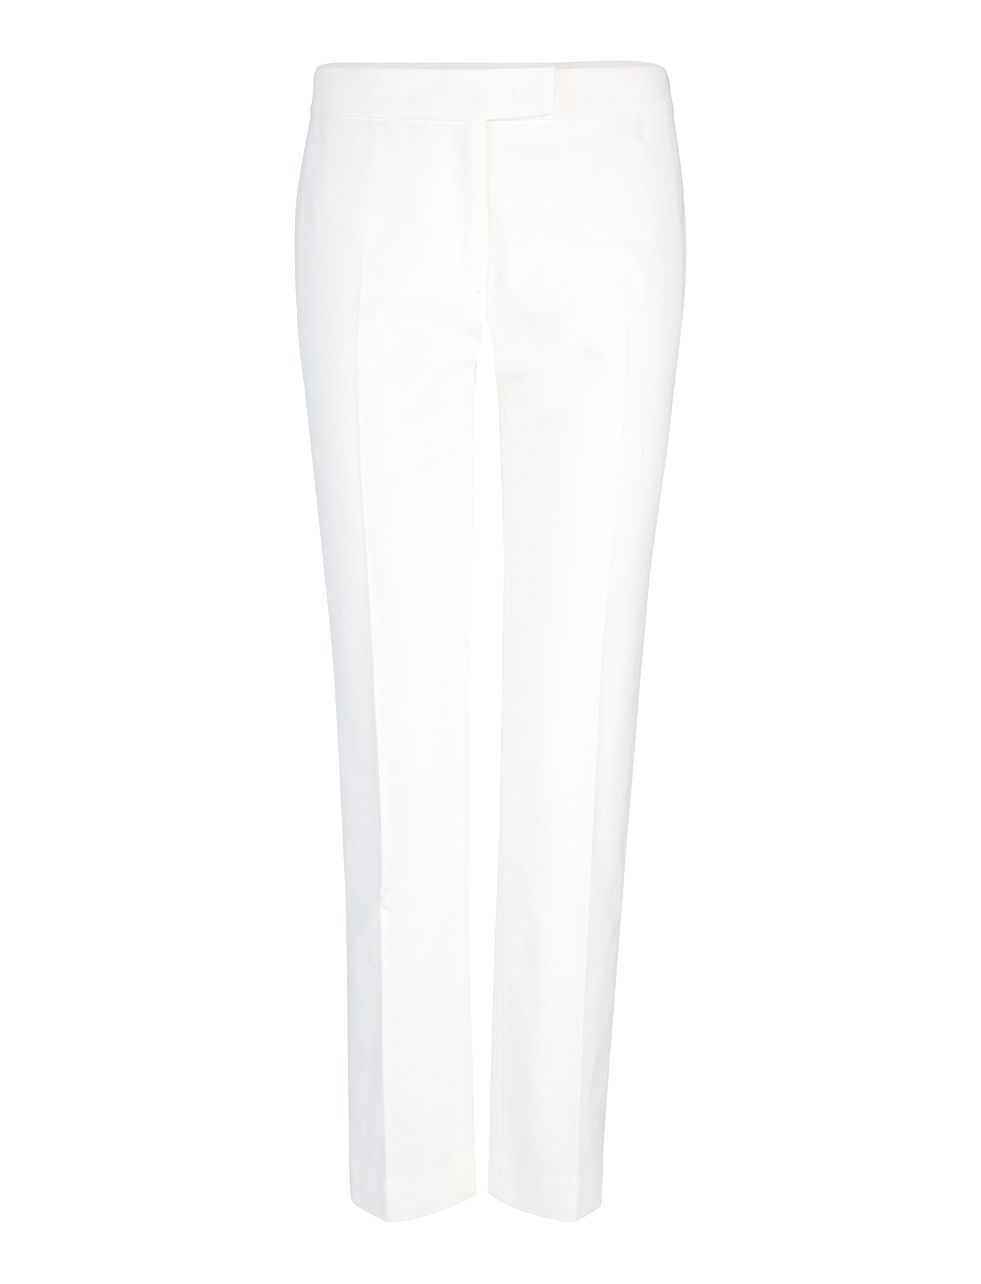 Gabardine Stretch Finley Trouser In Off White - length: standard; pattern: plain; waist: mid/regular rise; predominant colour: white; occasions: evening, creative work; fibres: cotton - mix; texture group: cotton feel fabrics; fit: straight leg; pattern type: fabric; style: standard; season: a/w 2015